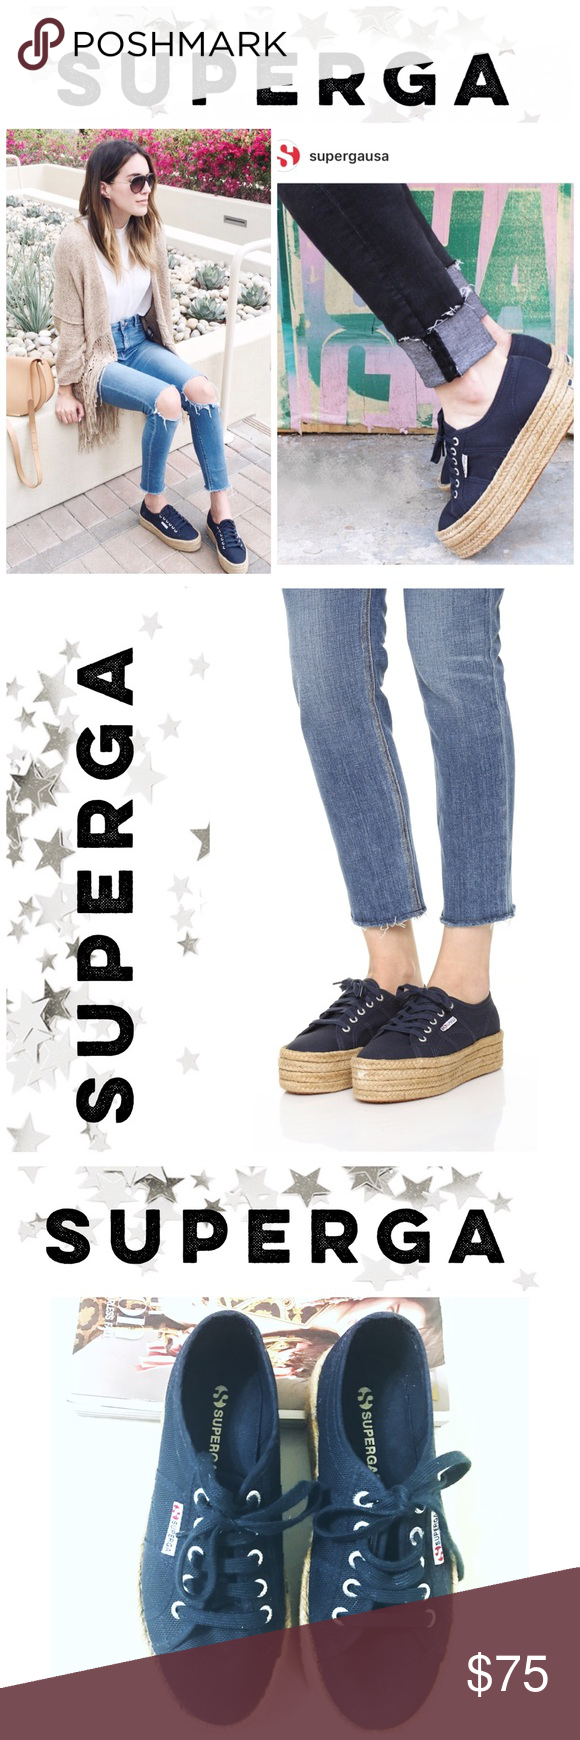 superga espadrilles sneakers in navy blue celebrity and